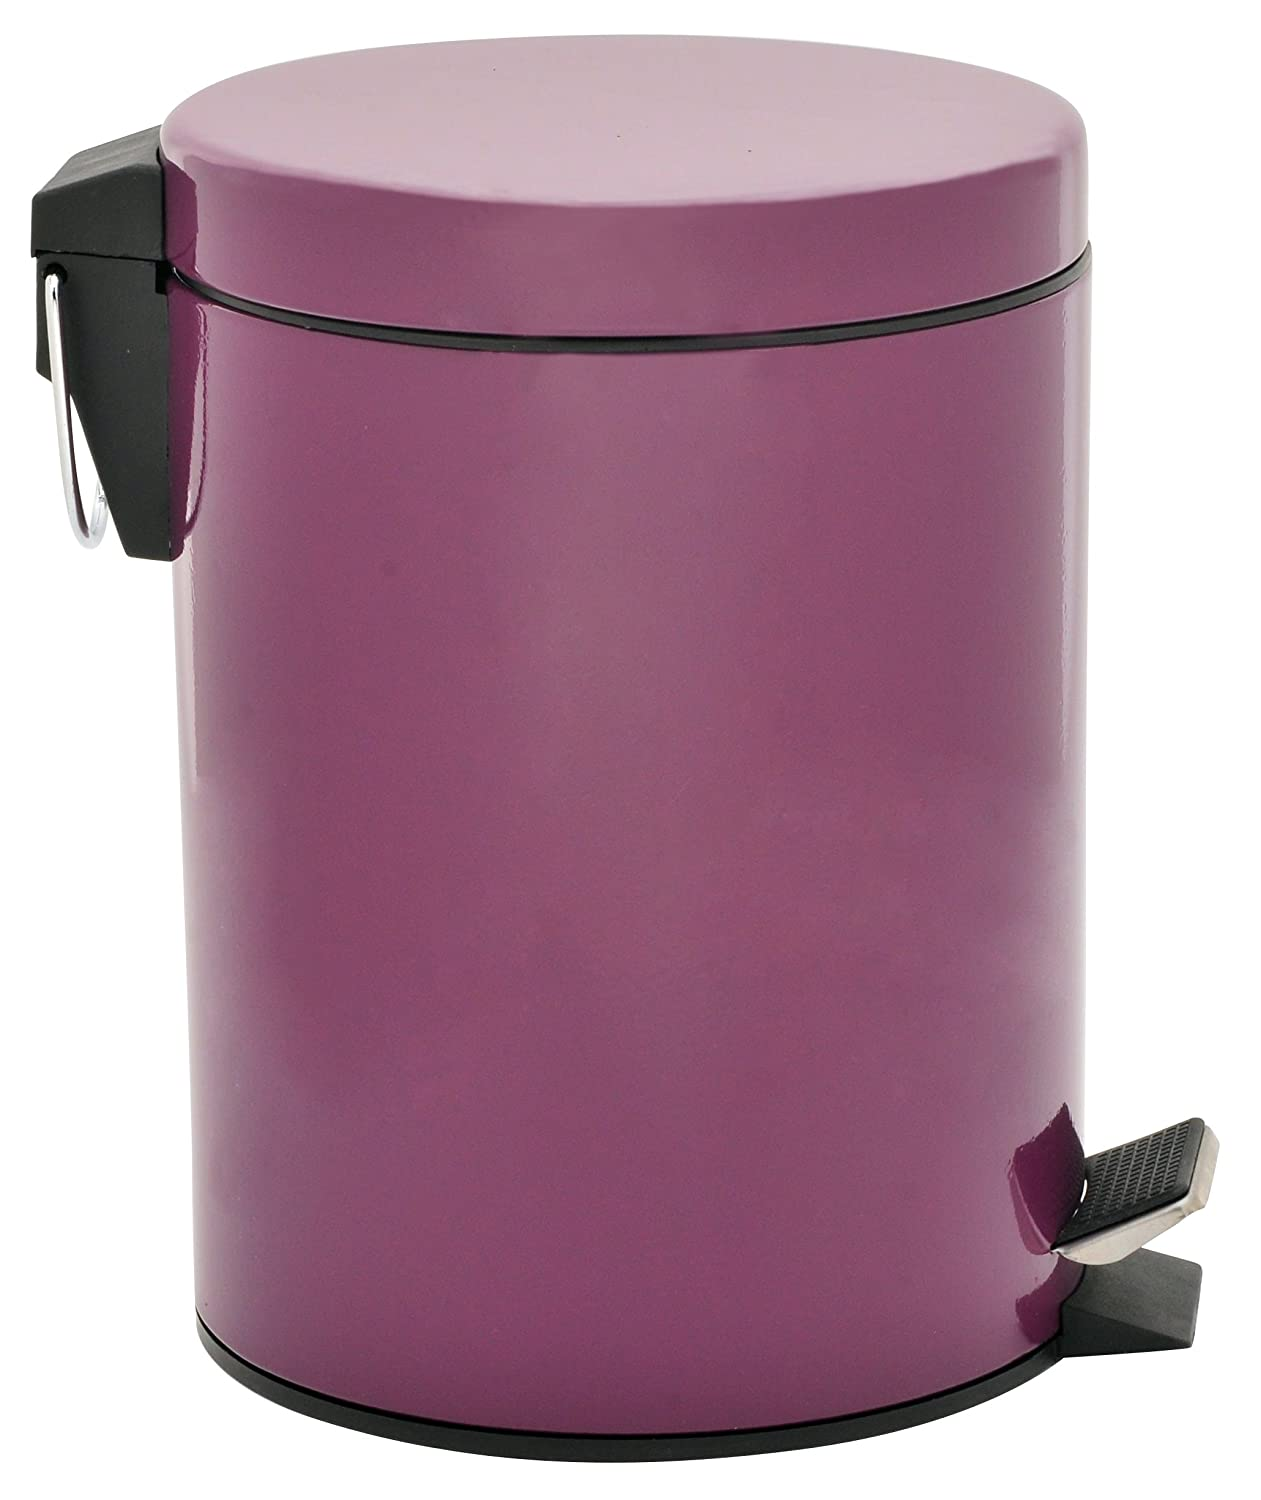 Hopeful by Long-Lived 5 Liter/1.3 Gallon Round Step Color Trash Can Purple at Sears.com